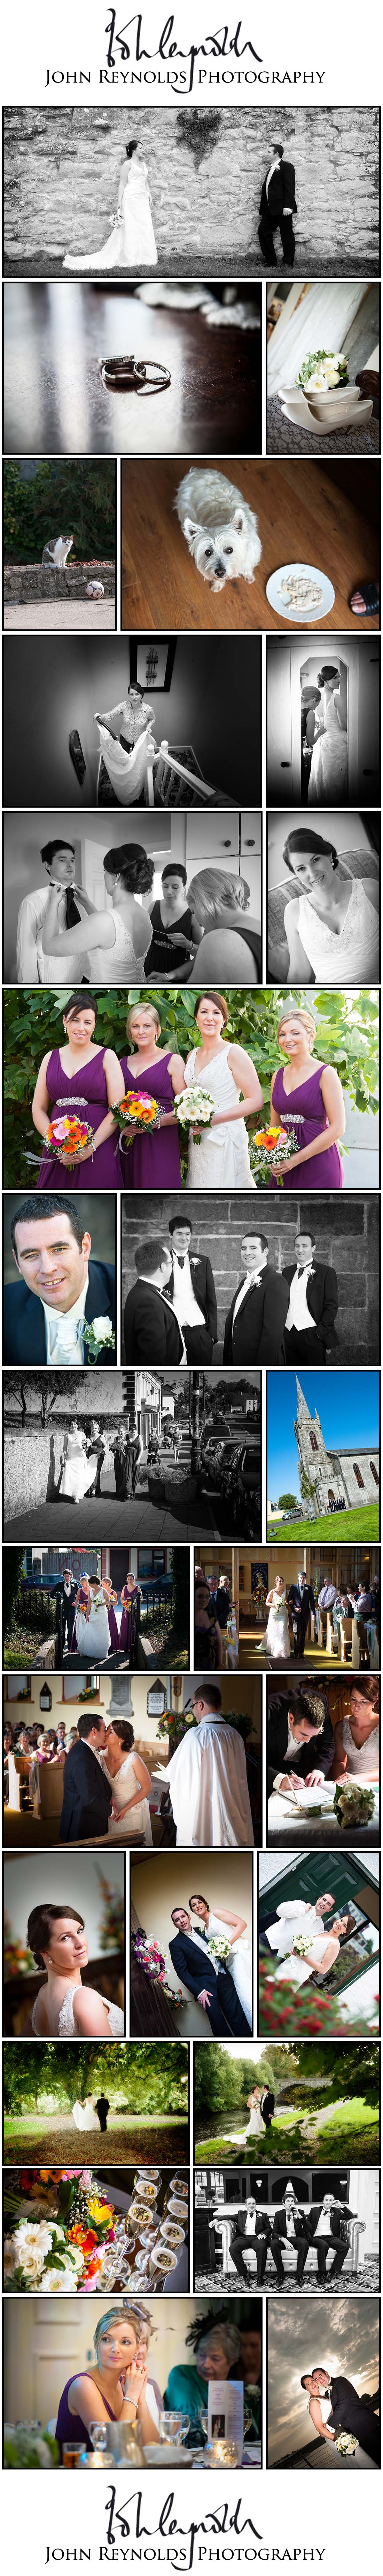 Blog Collage-Jill & Sean